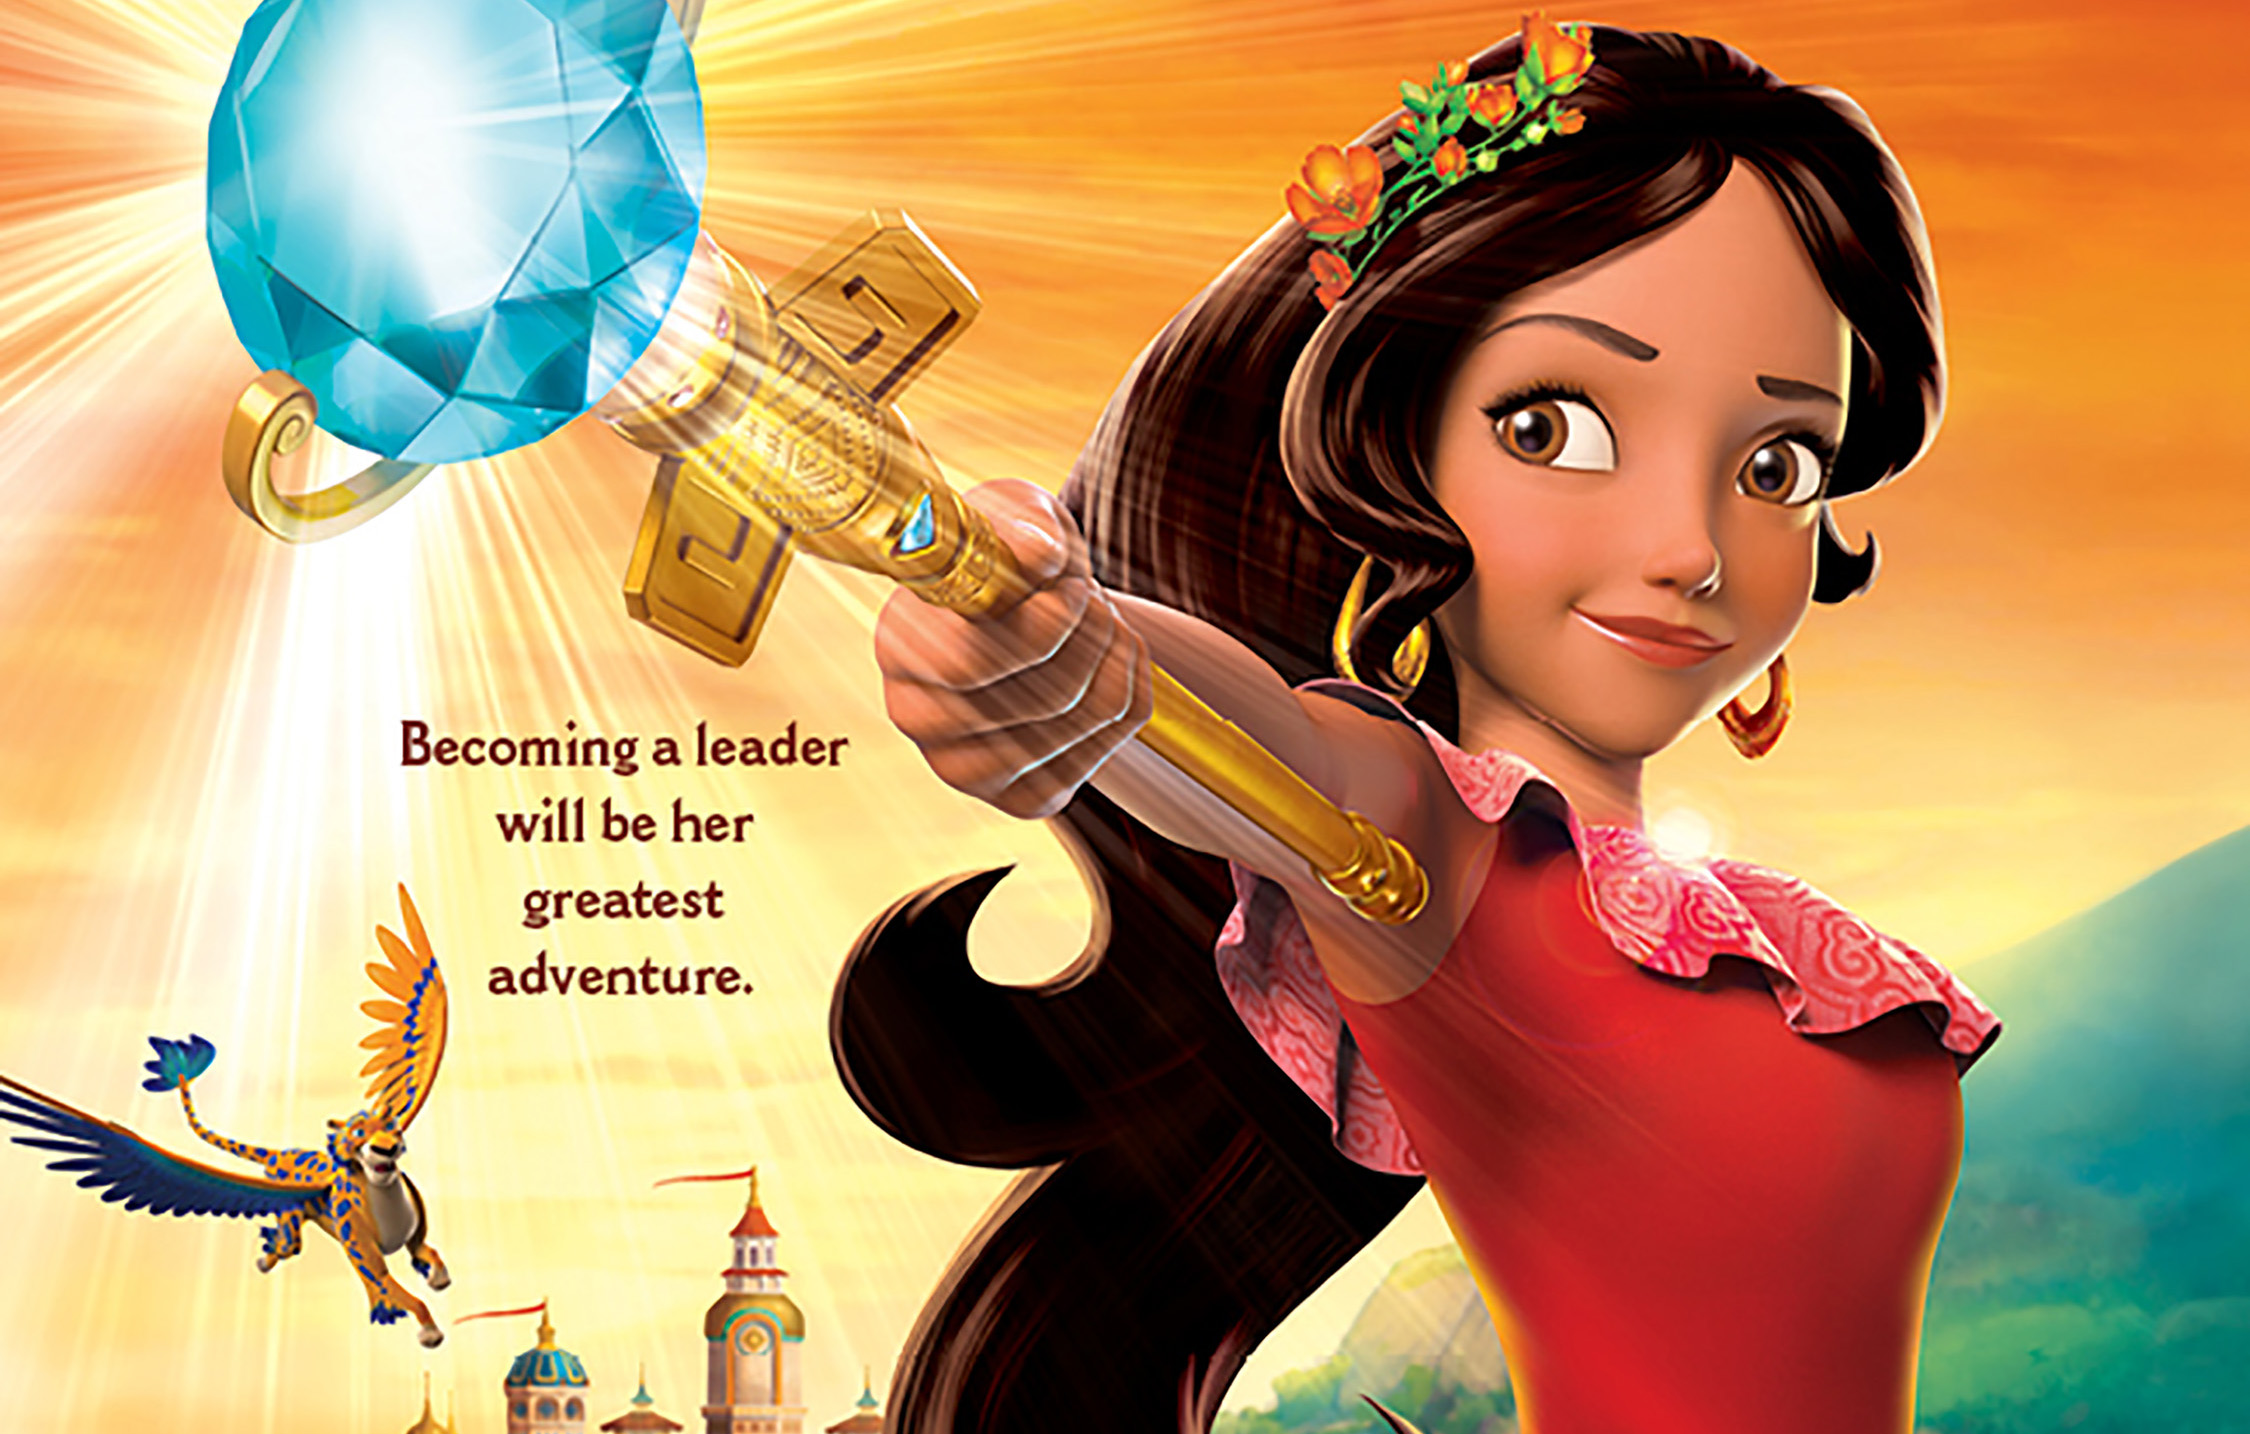 Disney Princess Quotes Wallpaper Elena Of Avalor Premiere Date Disney Channel Announces